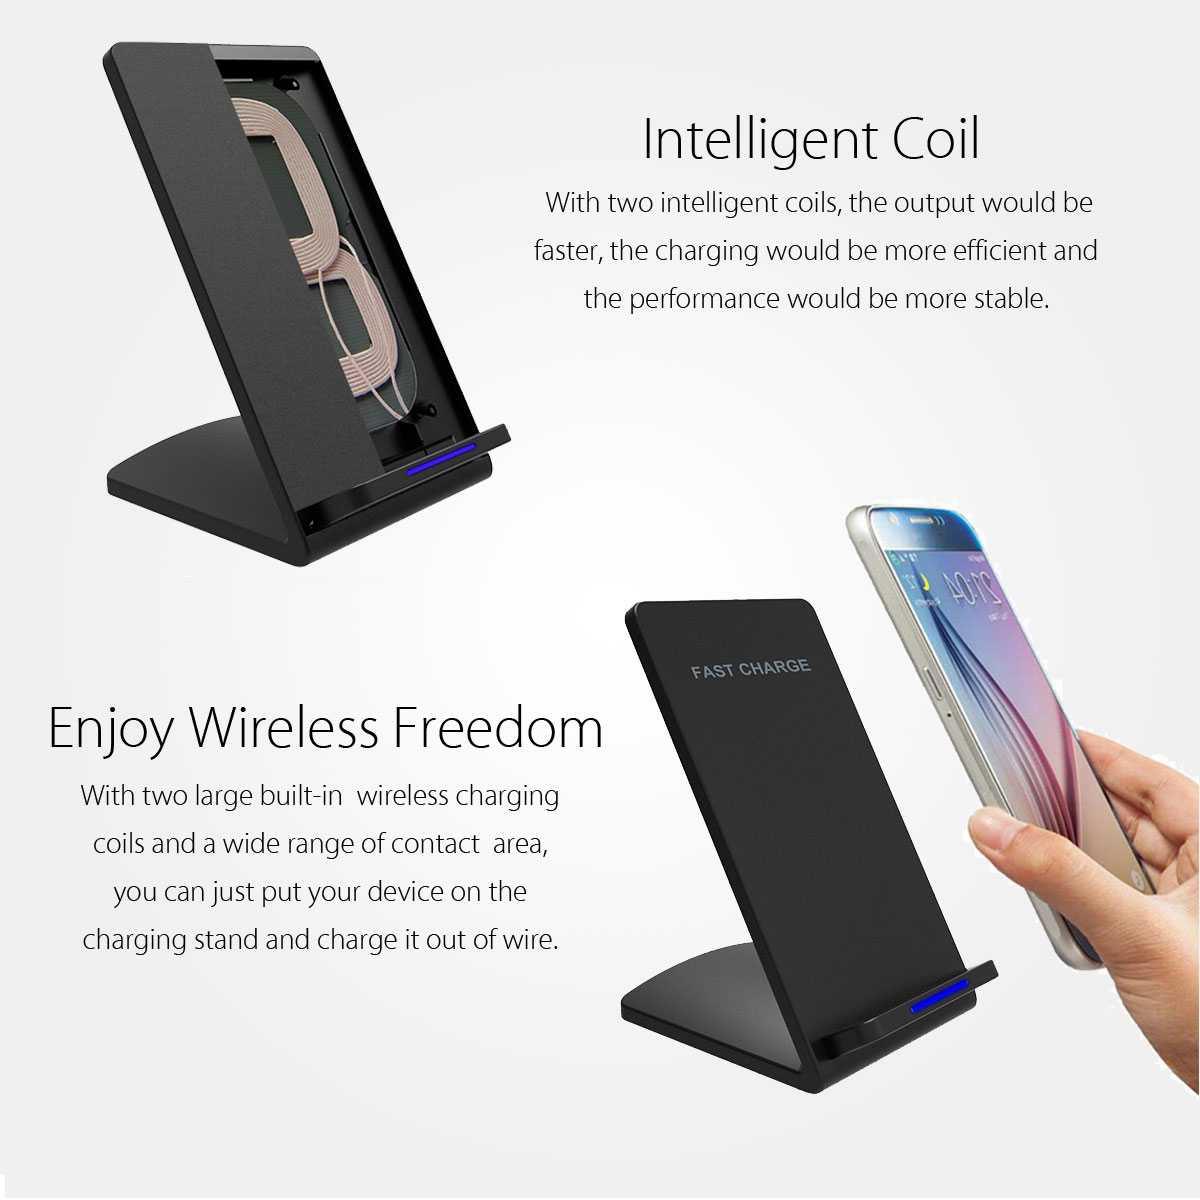 M520 10W 2 Coils Qi Wireless Quick Charger Stand Holder for Samsung S8 Galaxy Note 8 iPhone 8 Plus X